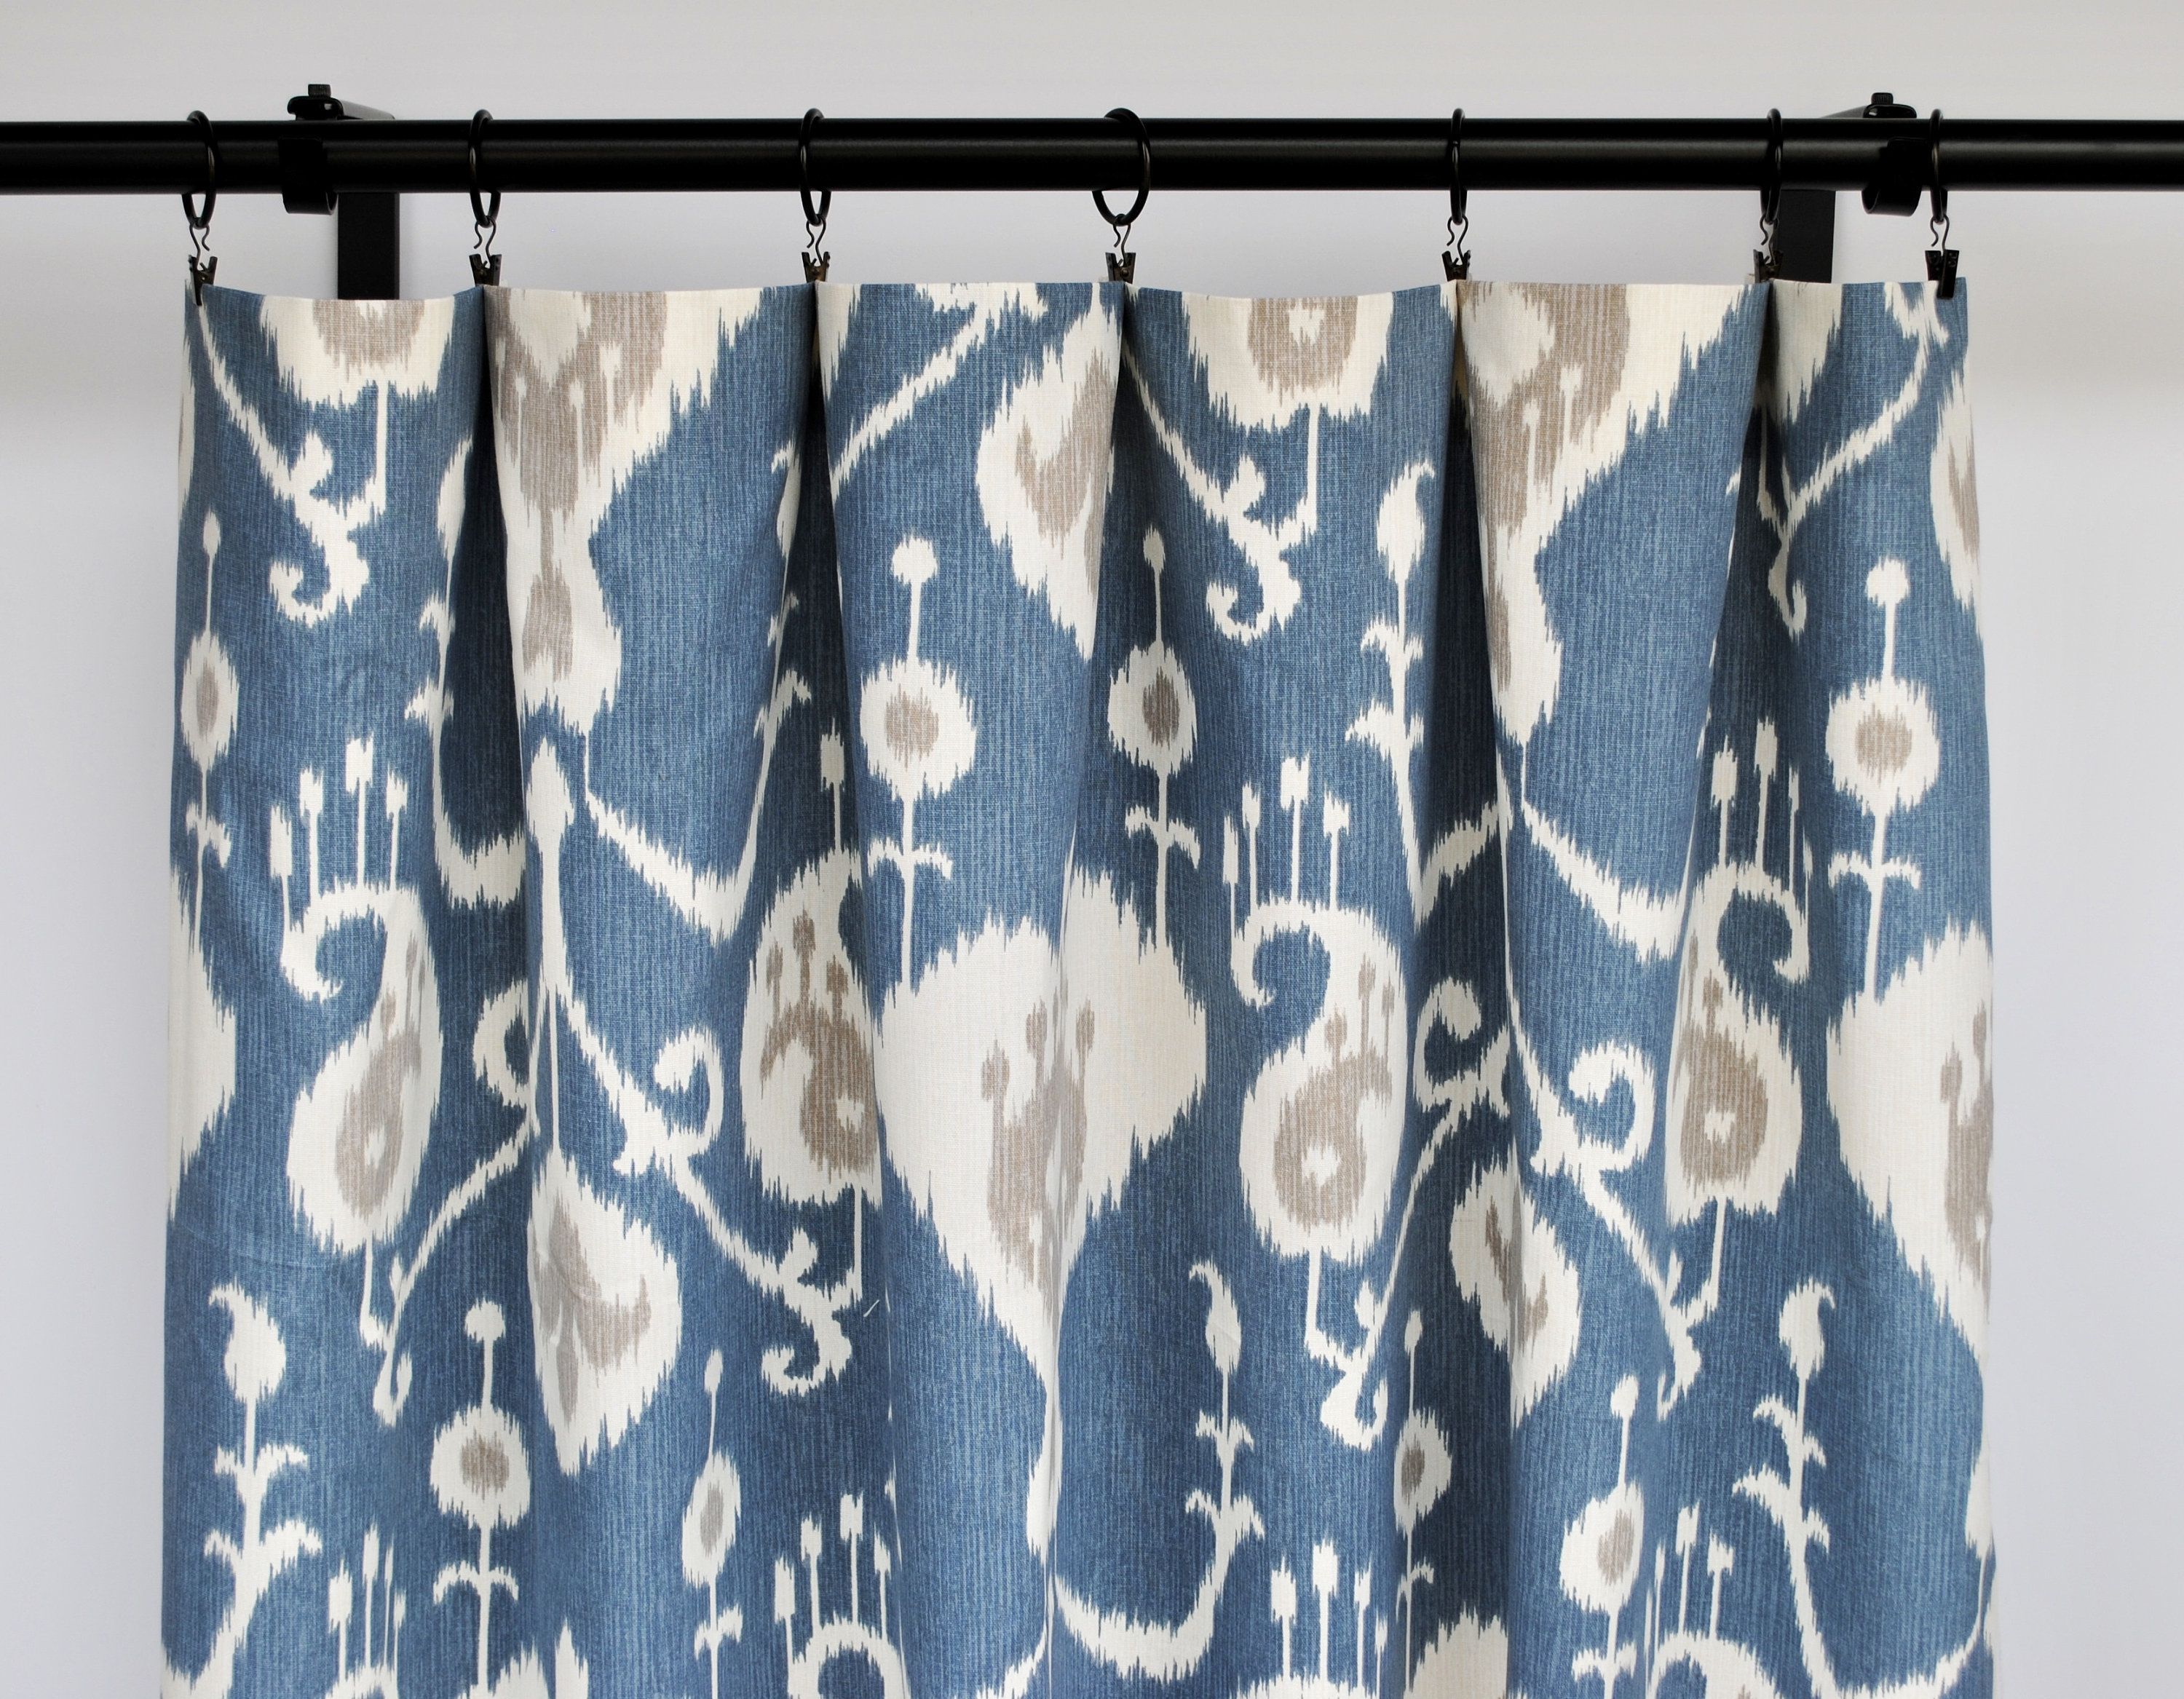 Magnolia Curtains Striped Blue Tan Curtain 2 Curtain Panels Curtains Home Decor Taupe Grey Curtain By Thatdutchgirl Tan Curtains Curtains Panel Curtains